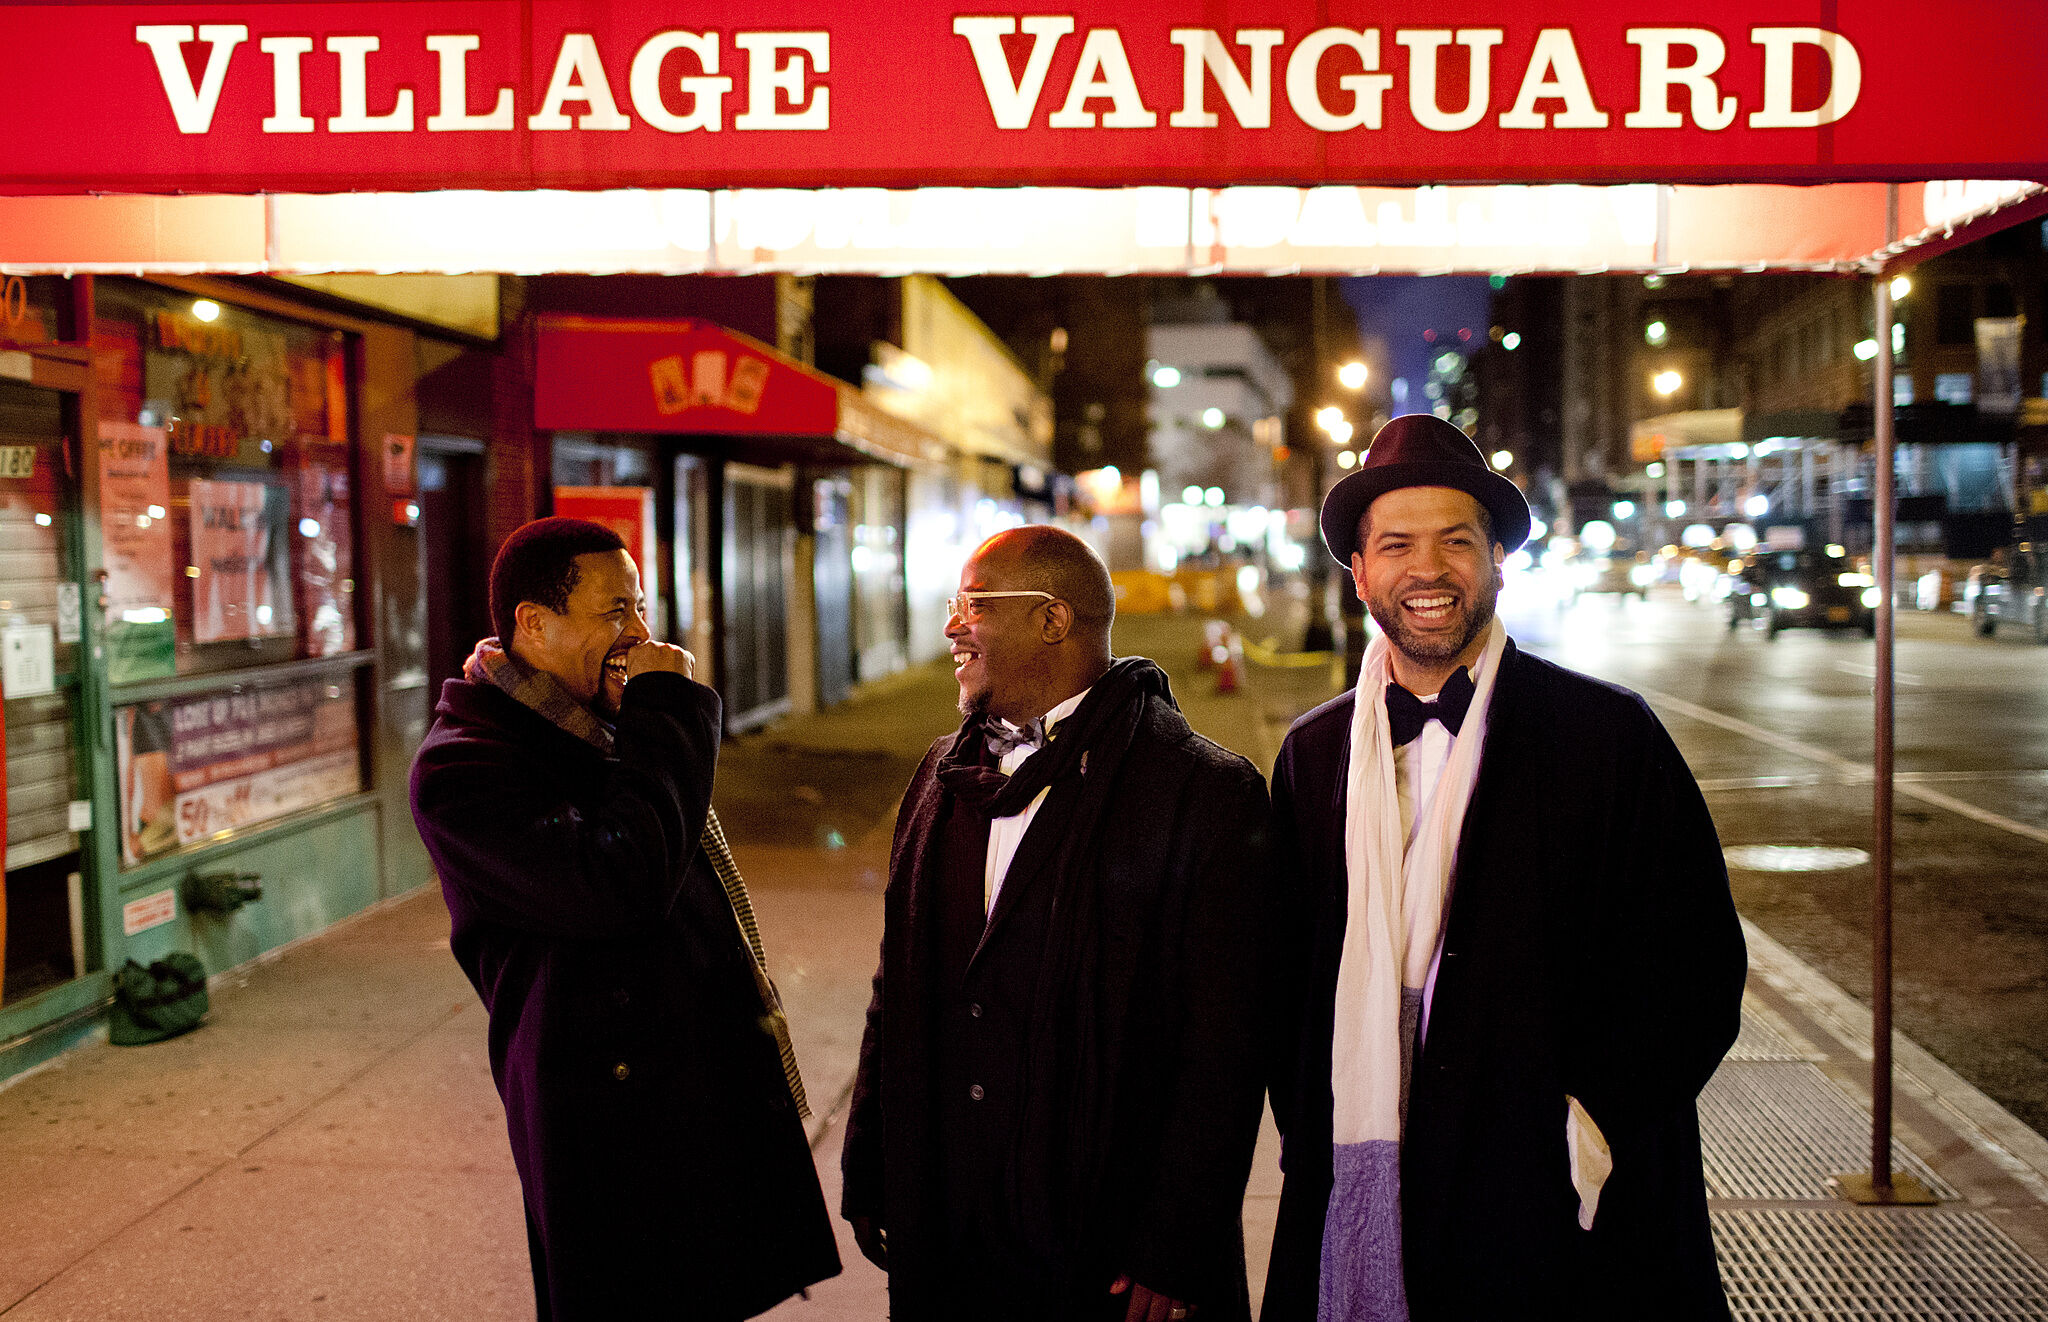 A photo of Nasheet Waits, Tarus Mateen, and Jason Moran outside the Village Vanguard